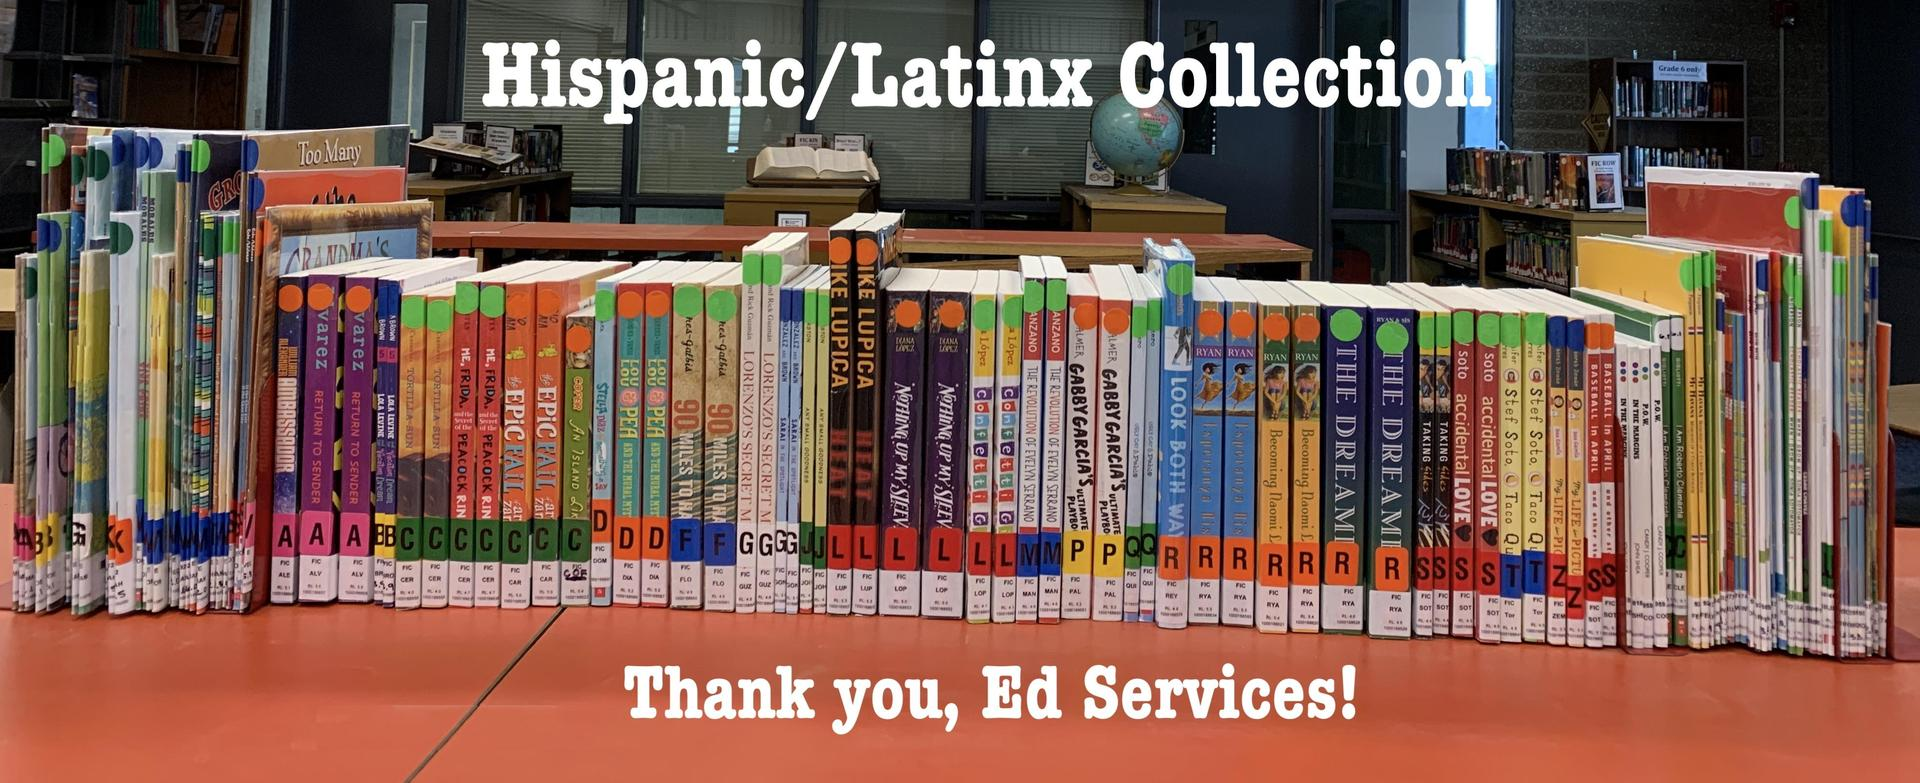 Thank you Ed Services